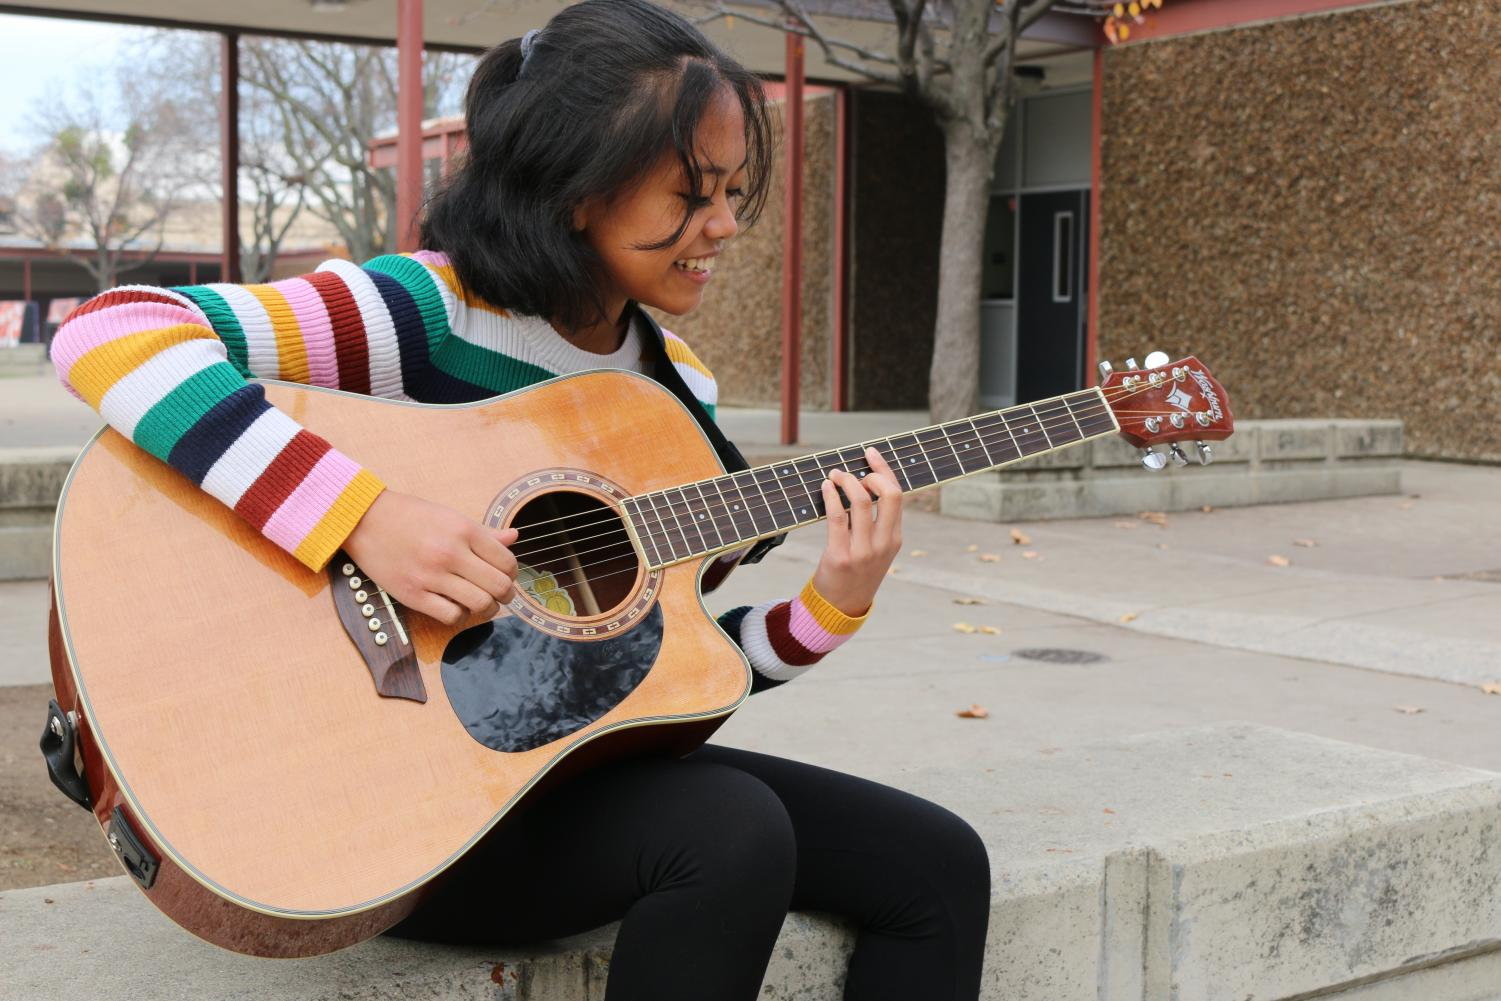 Sophomore Alesandra Cariaga is a triple threat; she can dance, sing, and write her own songs. With her guitar on hand, Cariaga feels confident in her own singing and playing abilities.